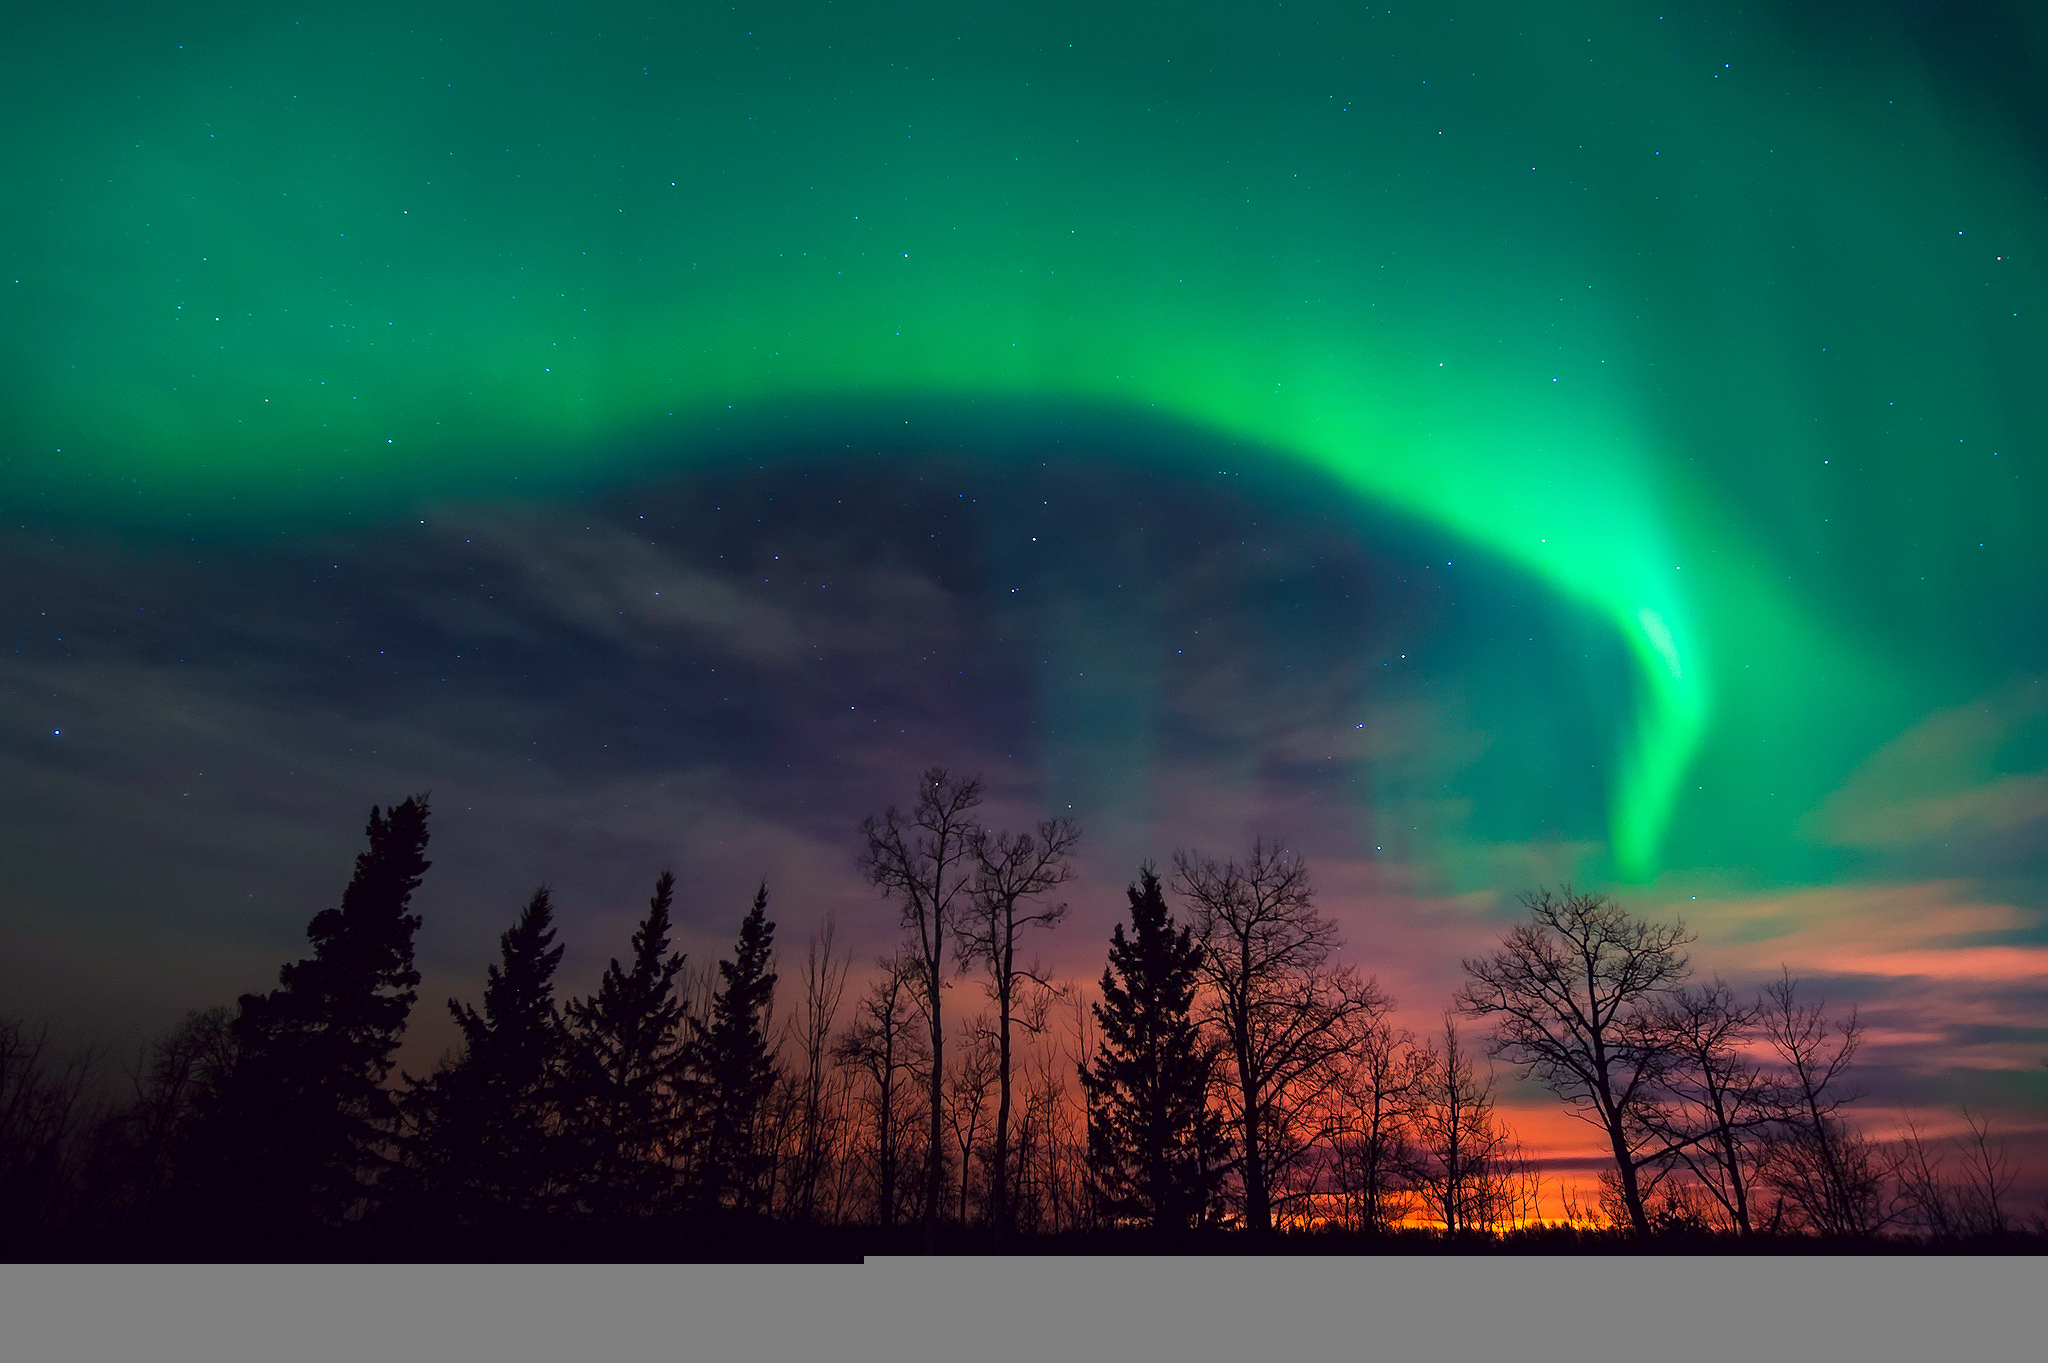 northern lights wallpaper windows 7 wallpapersafari. Black Bedroom Furniture Sets. Home Design Ideas